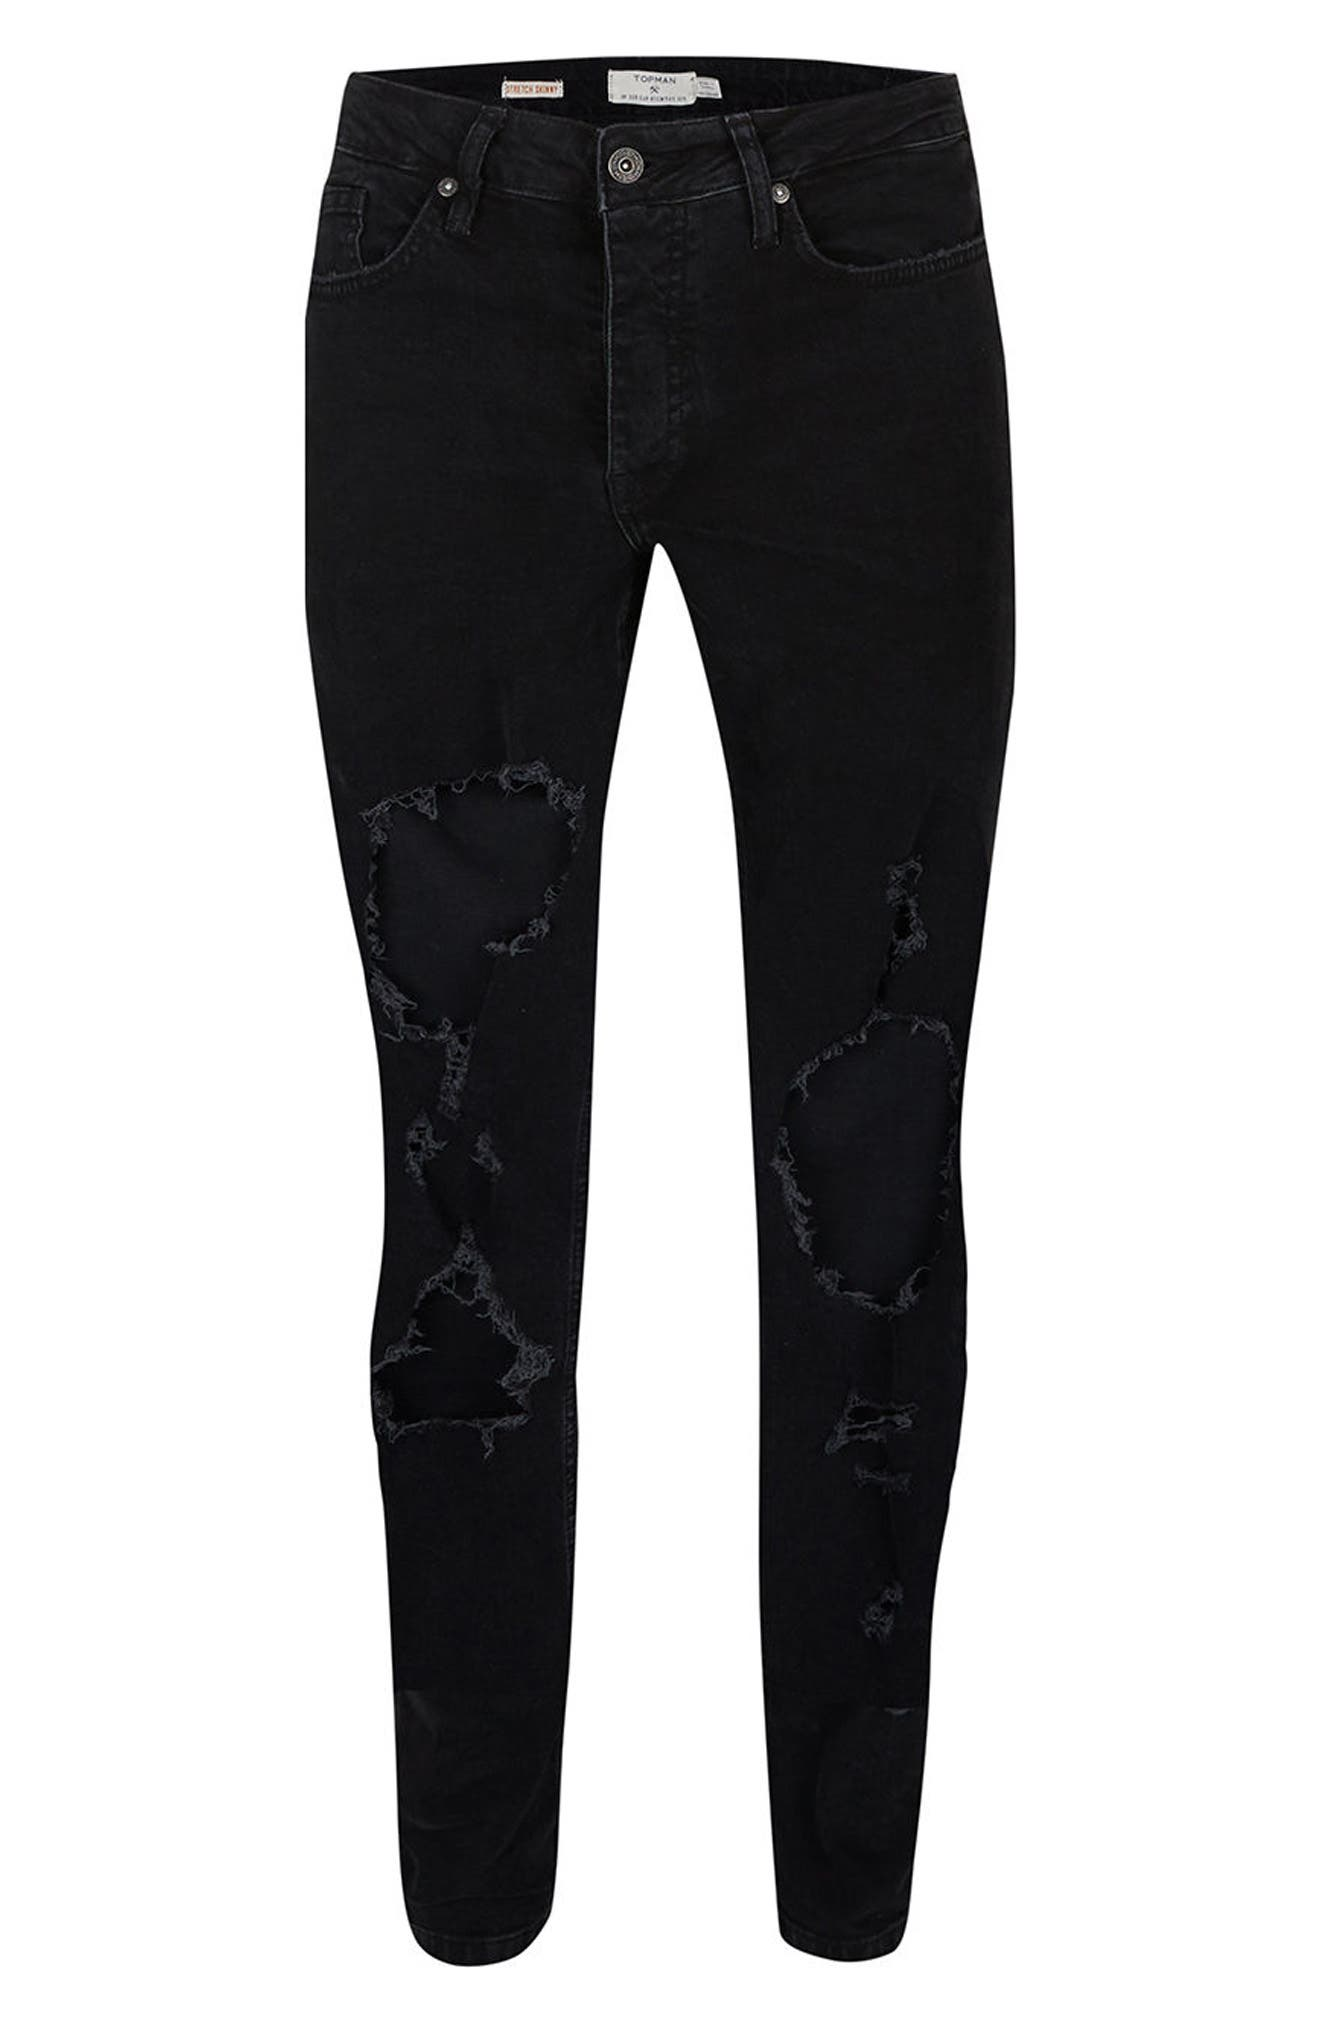 Extreme Ripped Stretch Skinny Fit Jeans,                             Alternate thumbnail 4, color,                             001